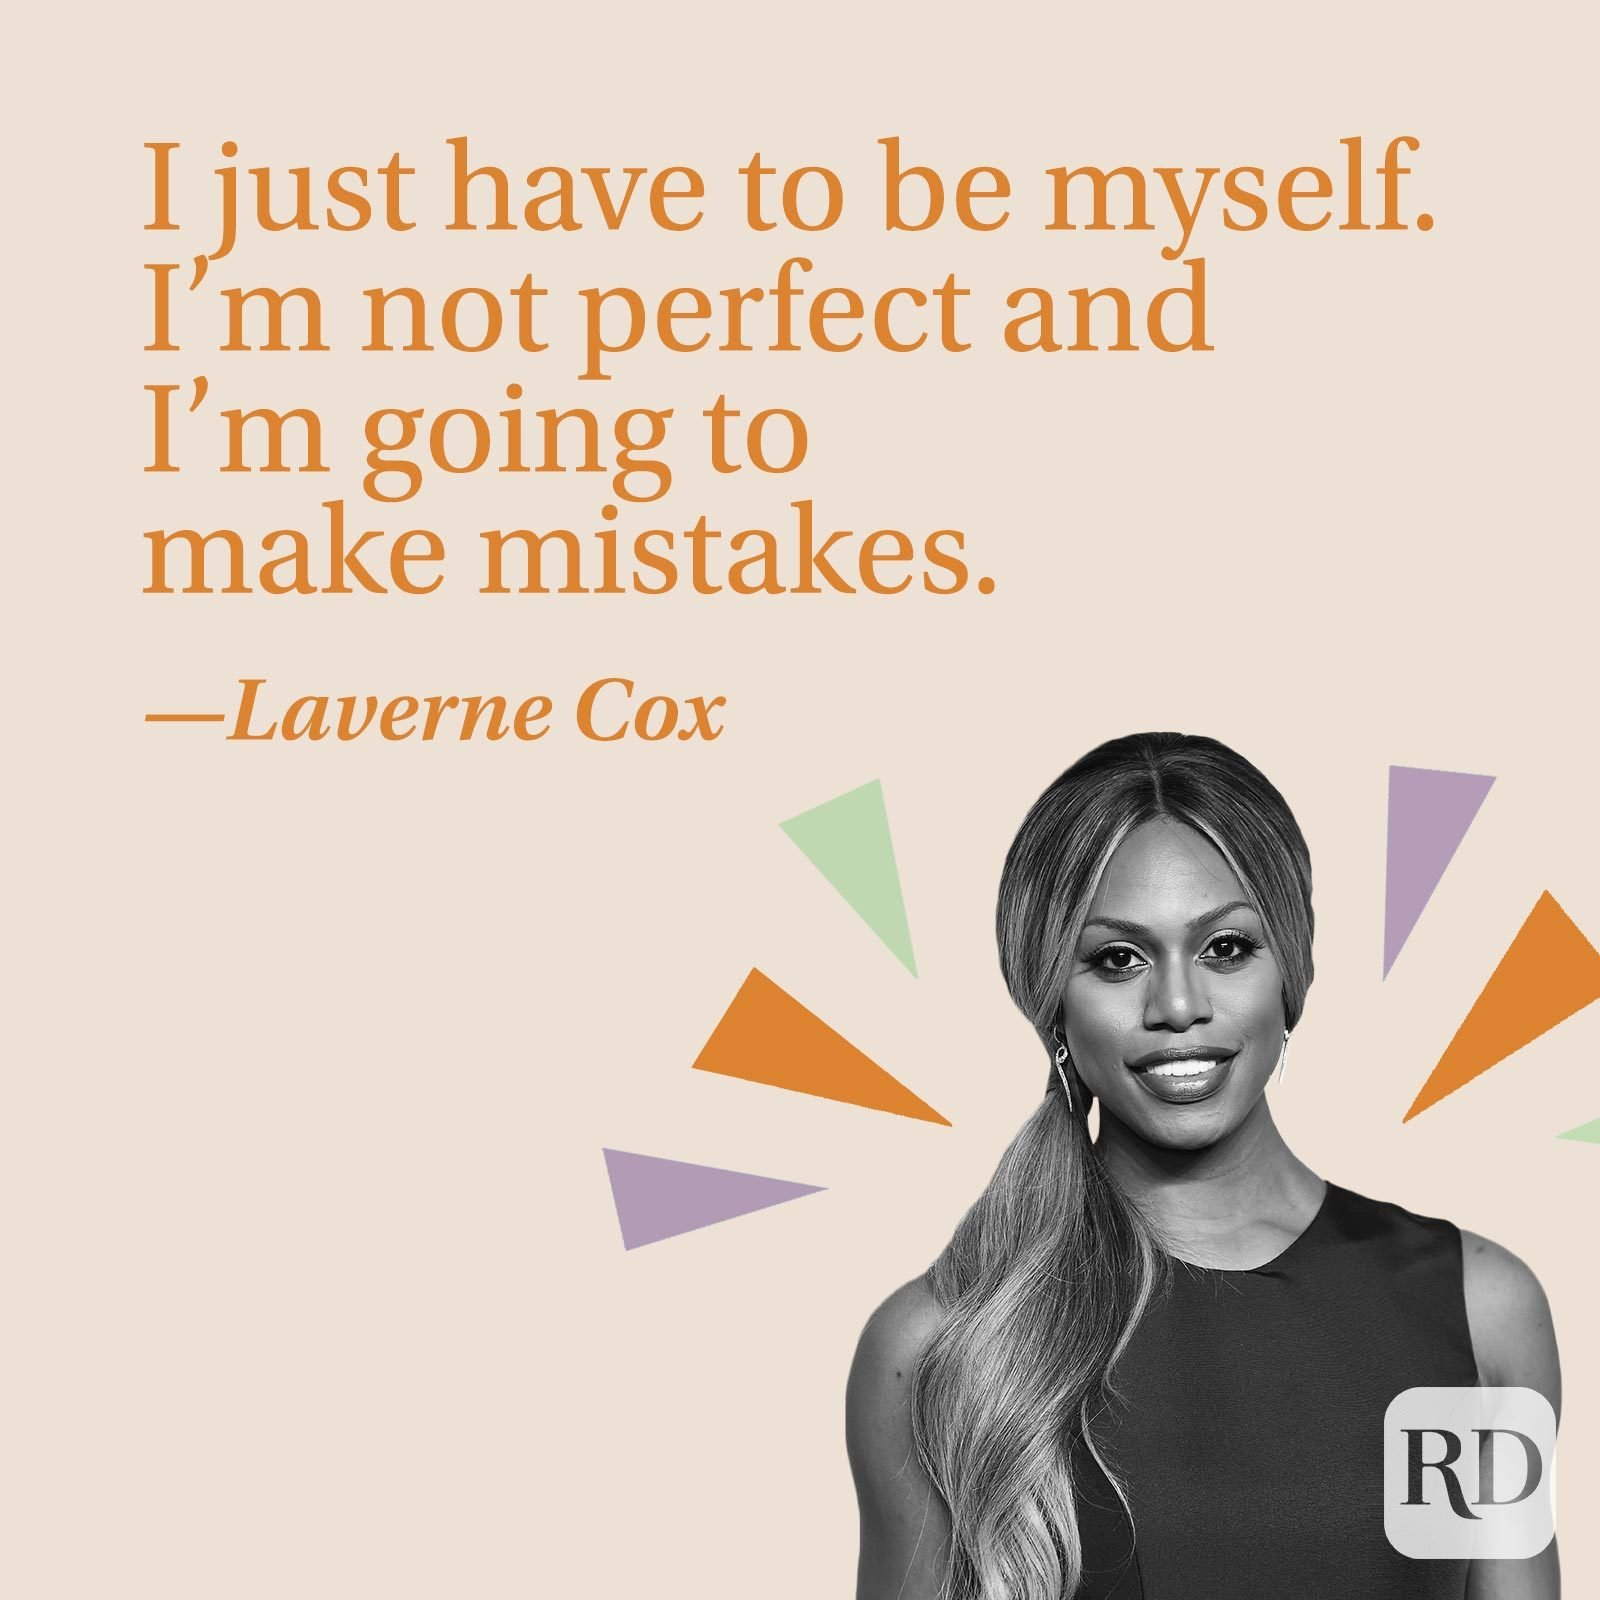 I just have to be myself. I'm not perfect and I'm going to make mistakes.—Laverne Cox